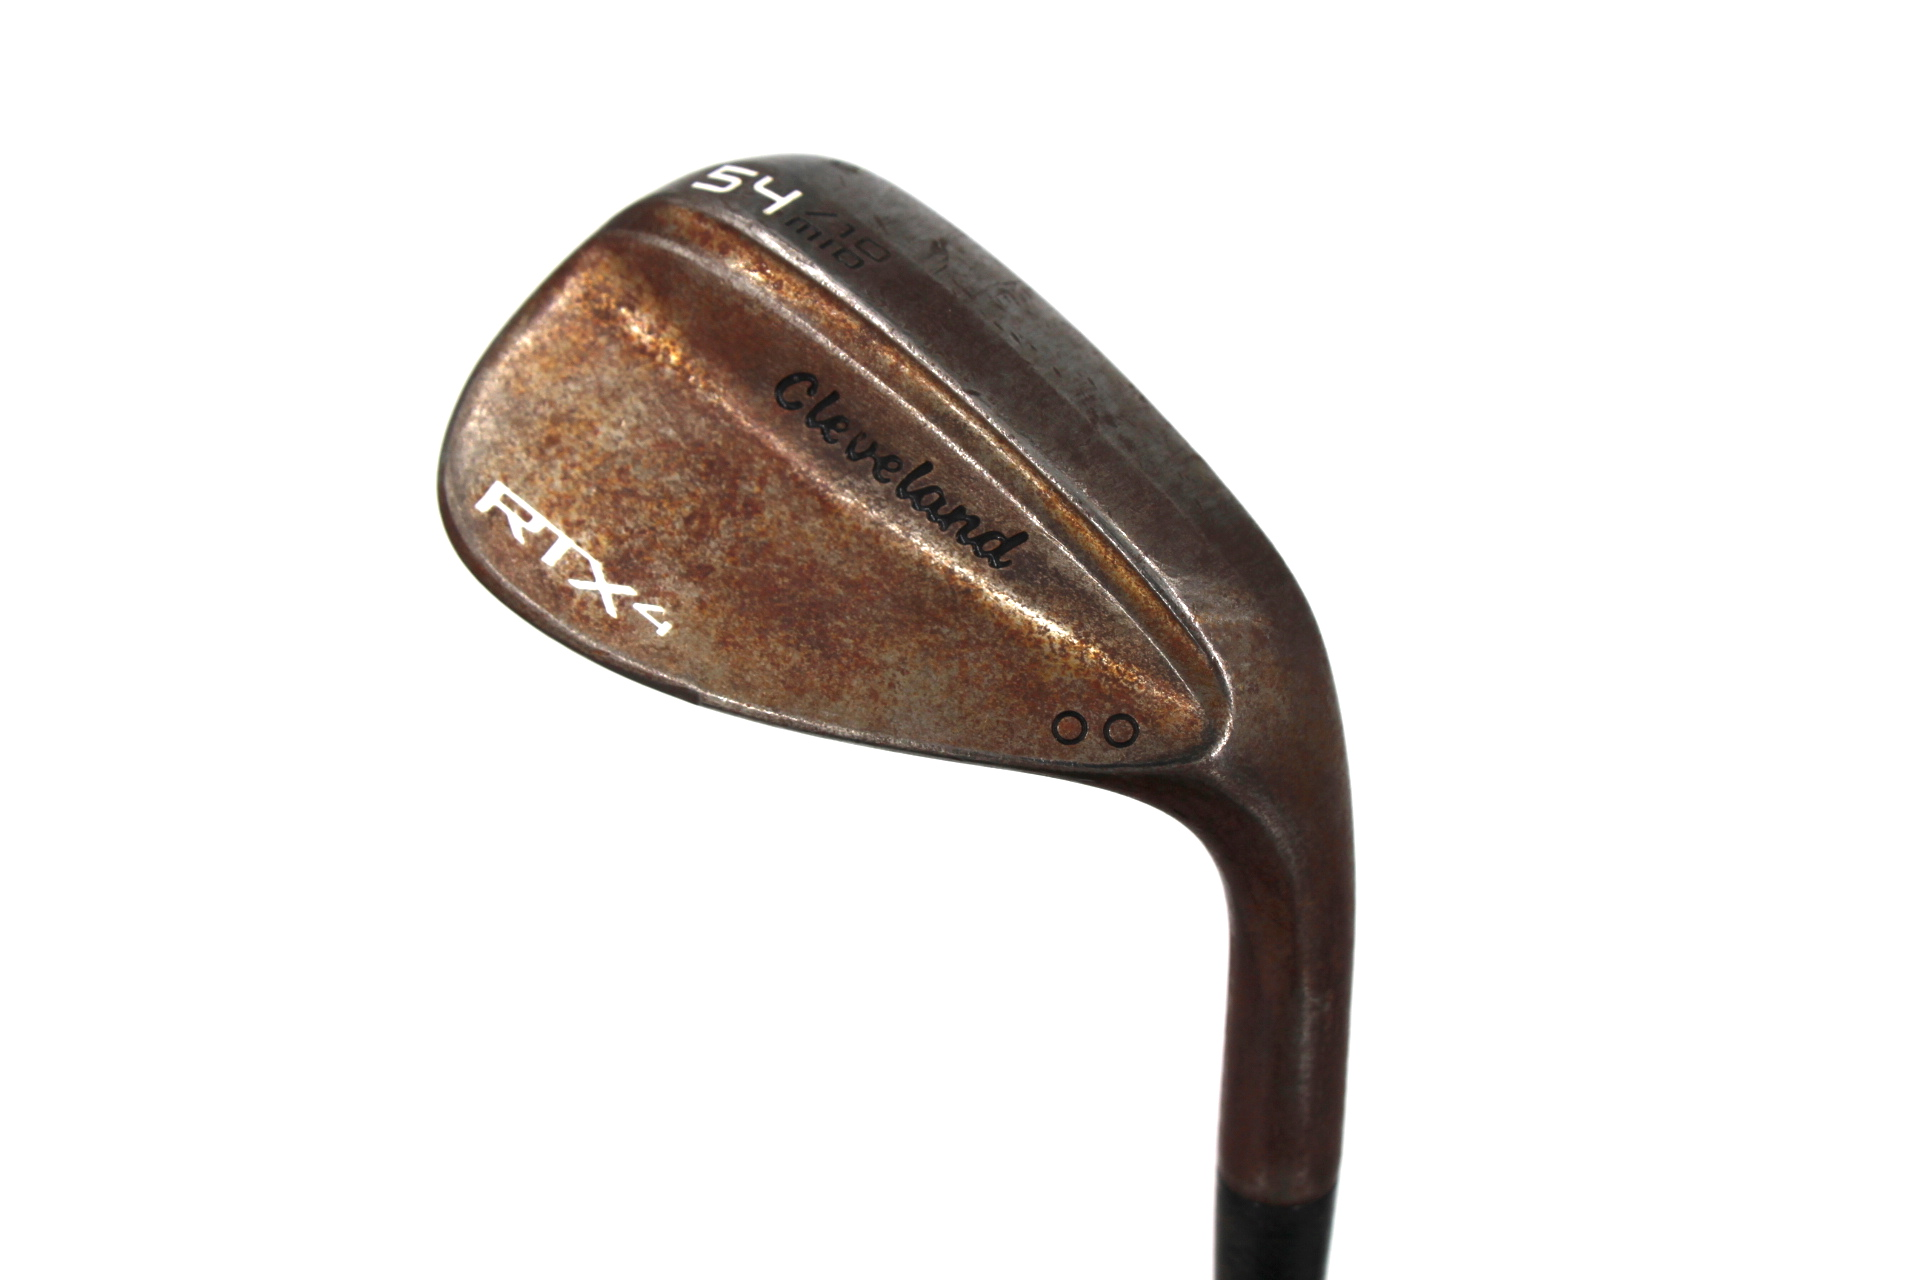 Cleveland RTX-4 Mid Grind Tour Raw 54″ Wedge